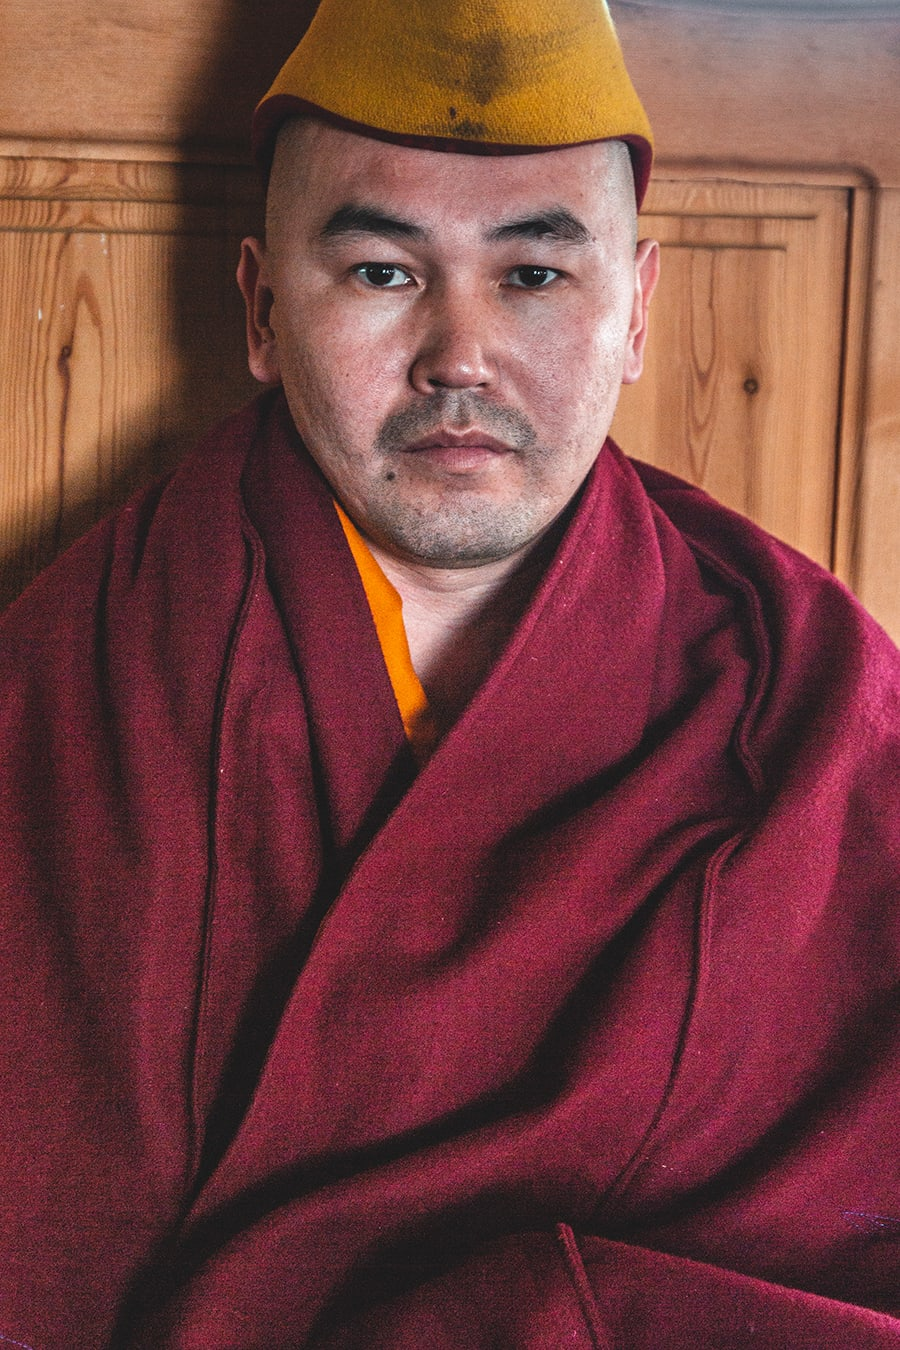 Senior buddhist monk in Buryatia Republic, Russia.